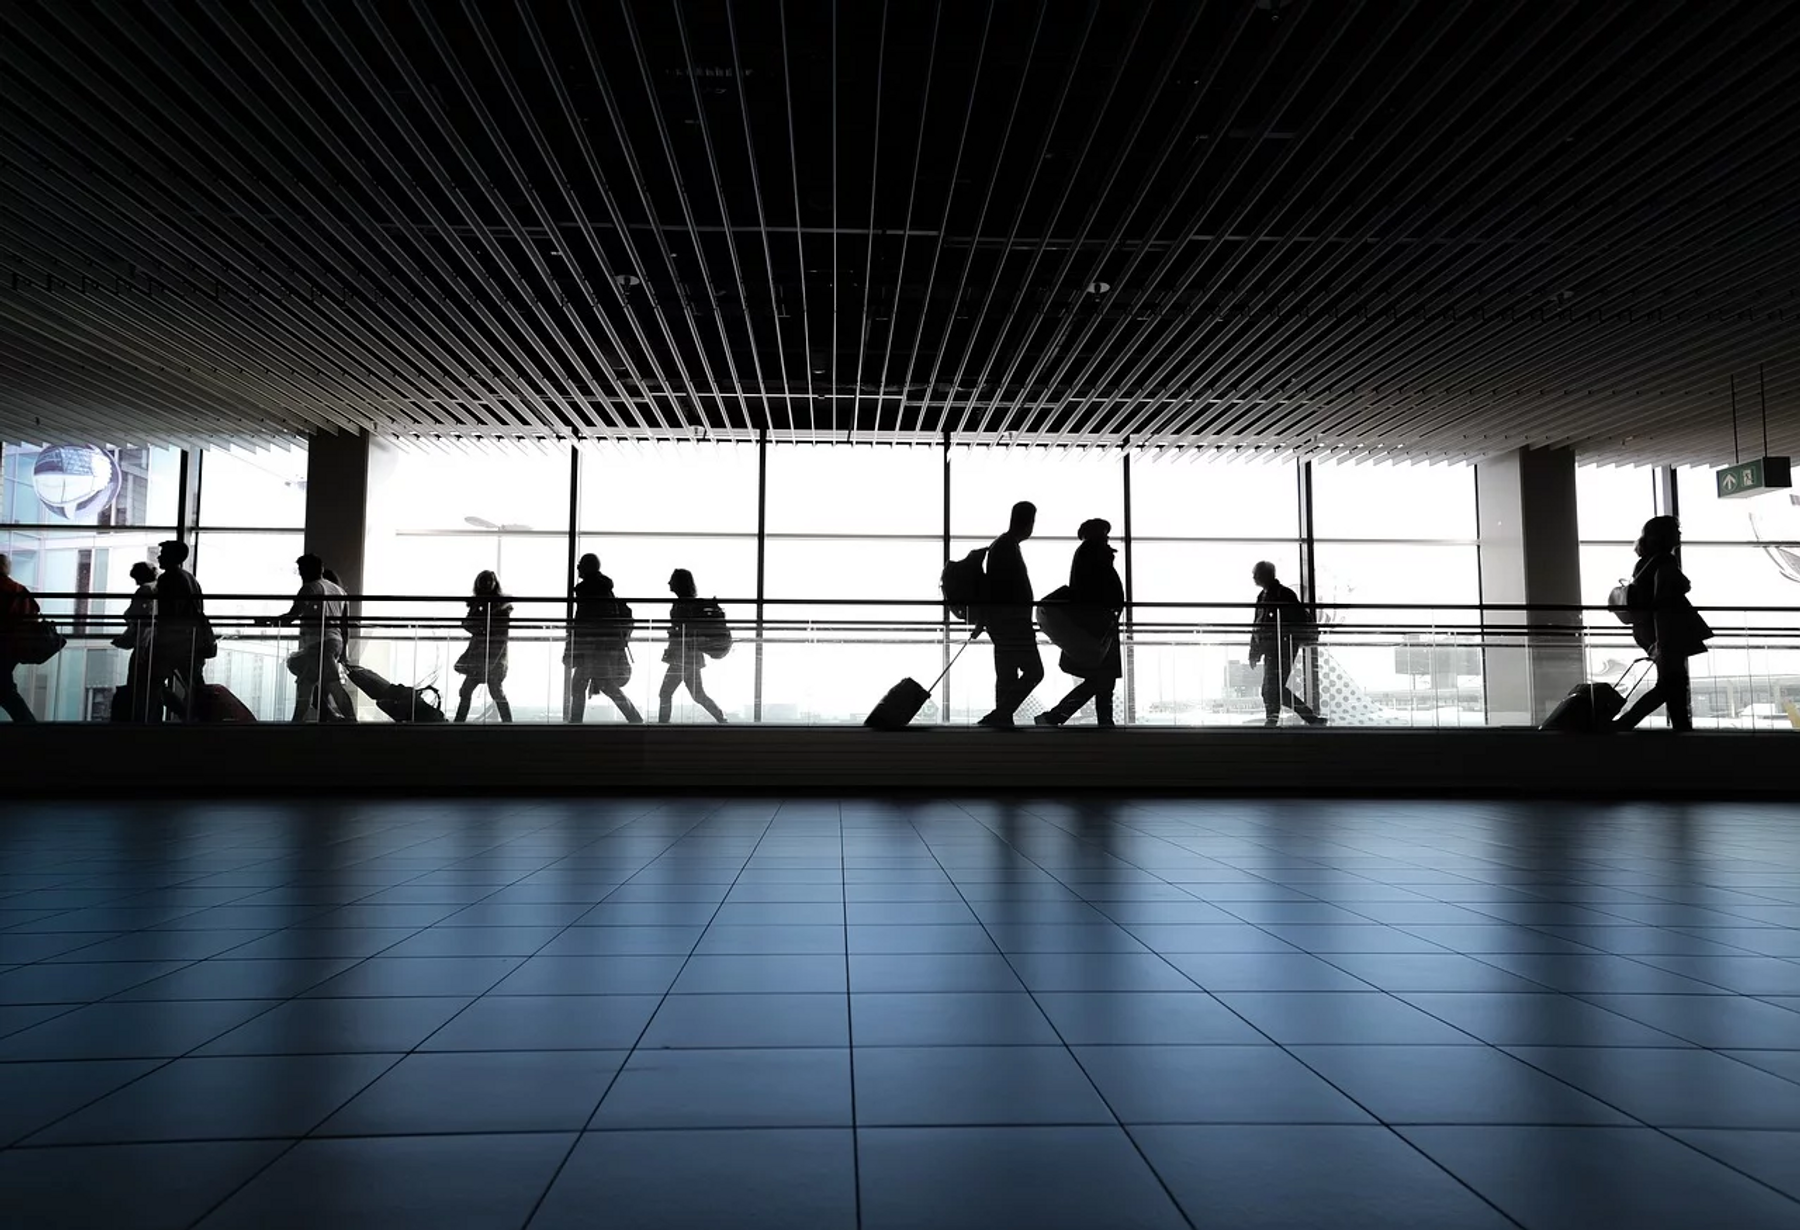 Airlines and airports have implemented new measures to protect passengers and staff.